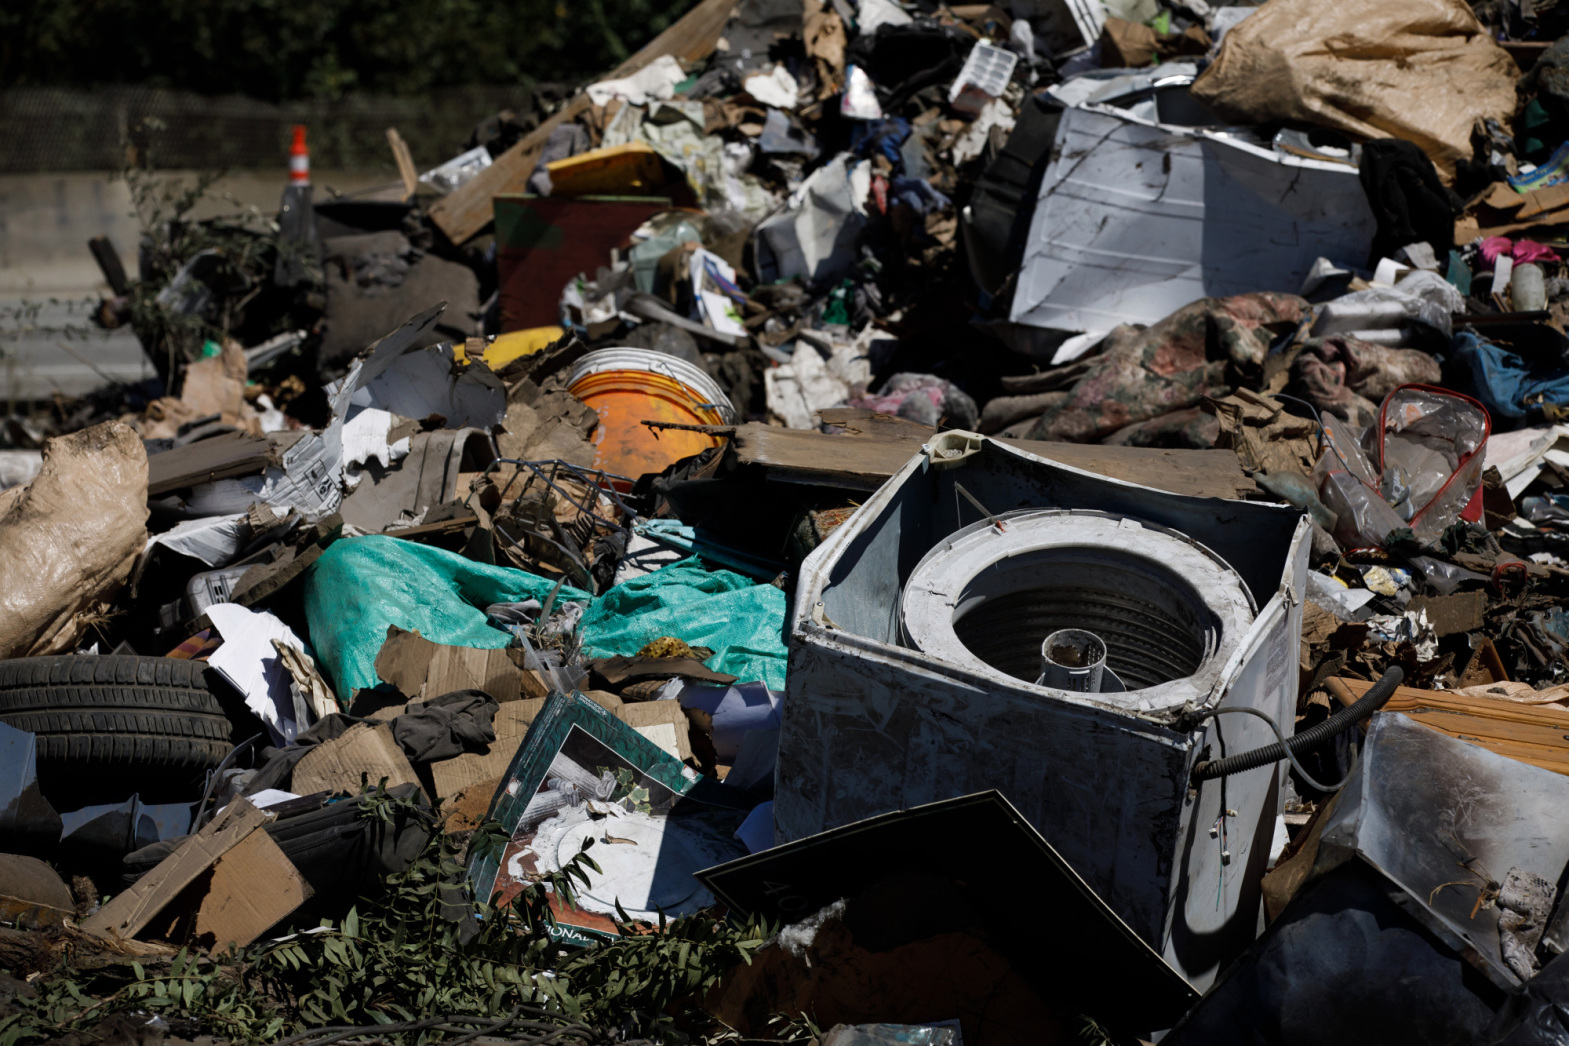 San Jose plans to levy $10,000 fines against people turning the city into a 'dumping ground'